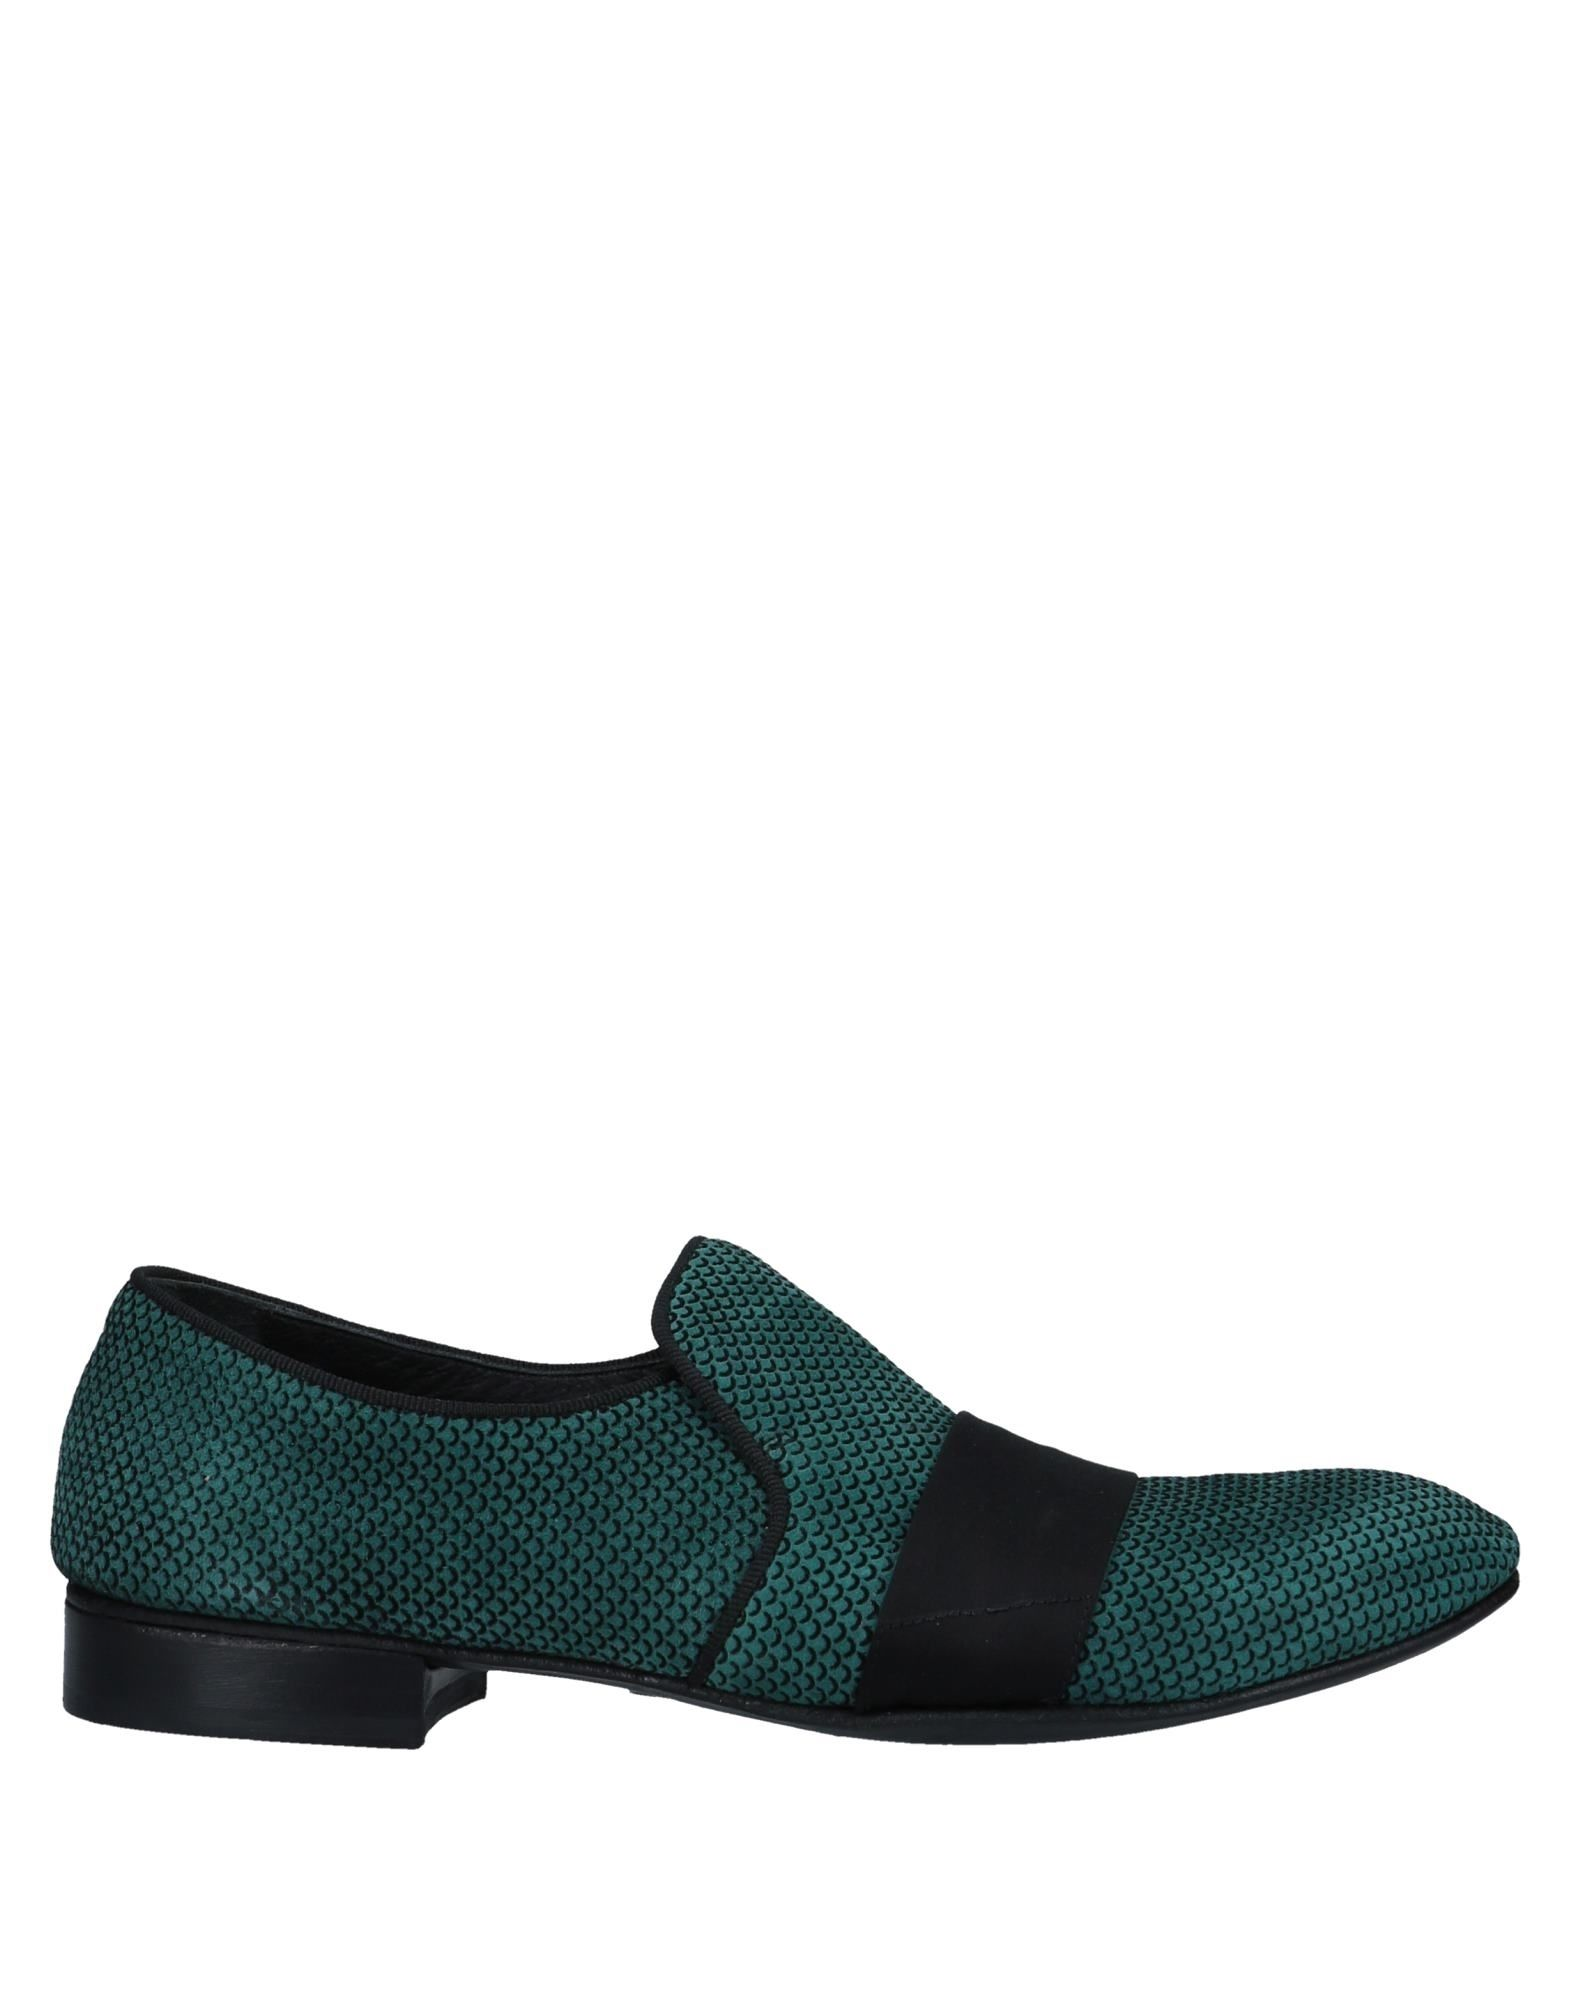 Kudetà Loafers - Women  Kudetà Loafers online on  Women United Kingdom - 11548227BO 261708